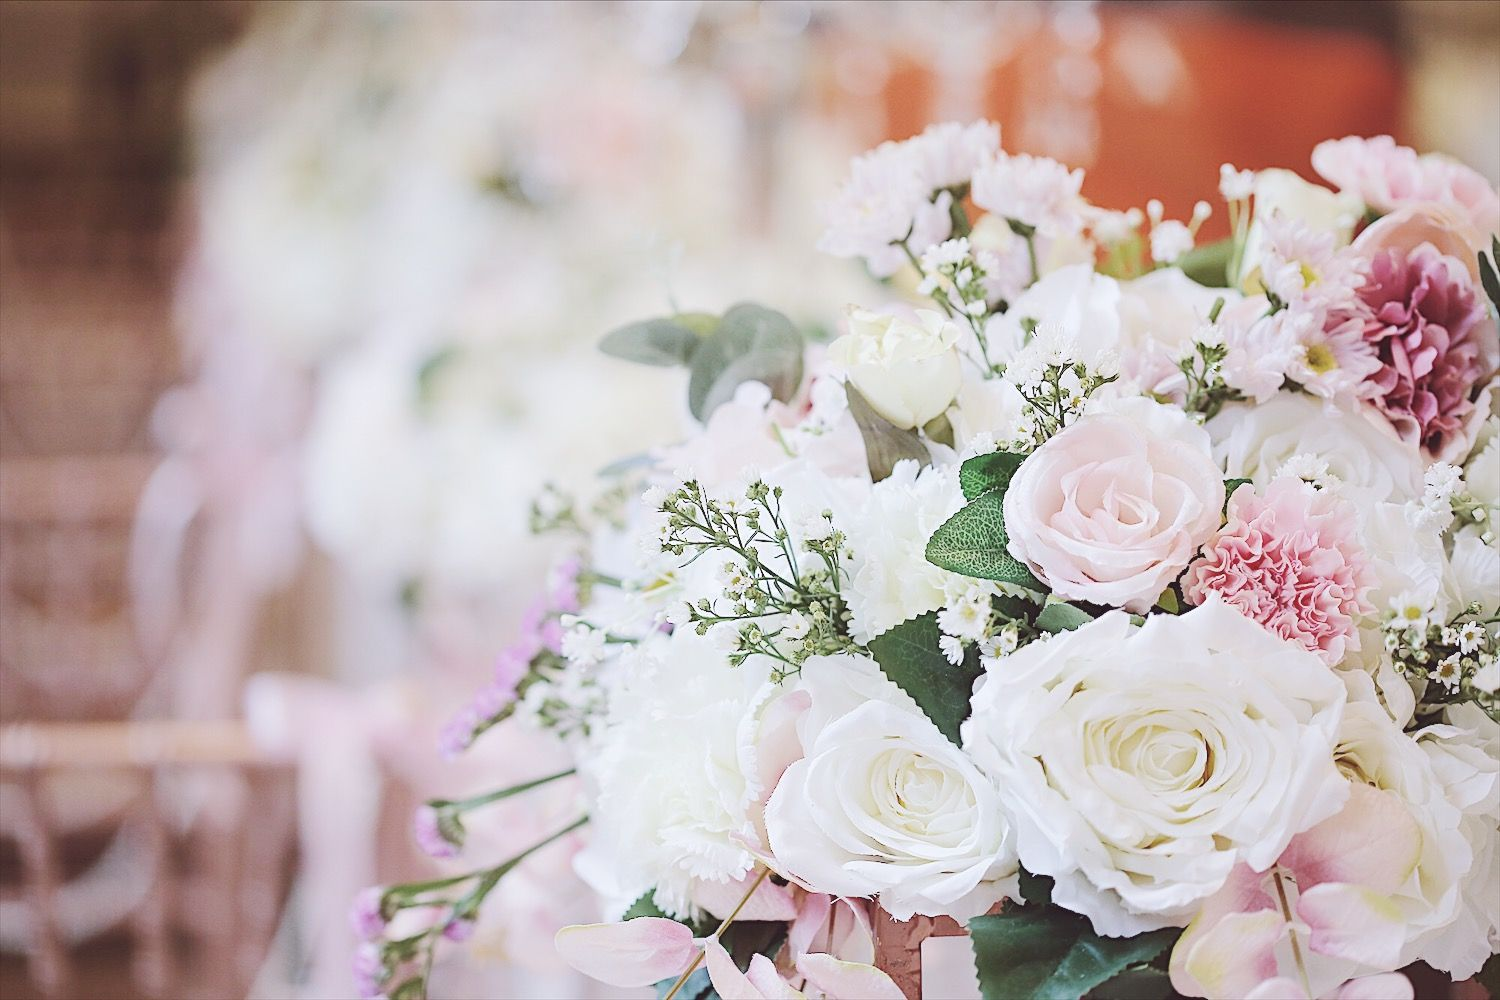 Wedding flower decoration images  Pin by Fordeara Weddings on Wedding Flower Decoration  Pinterest